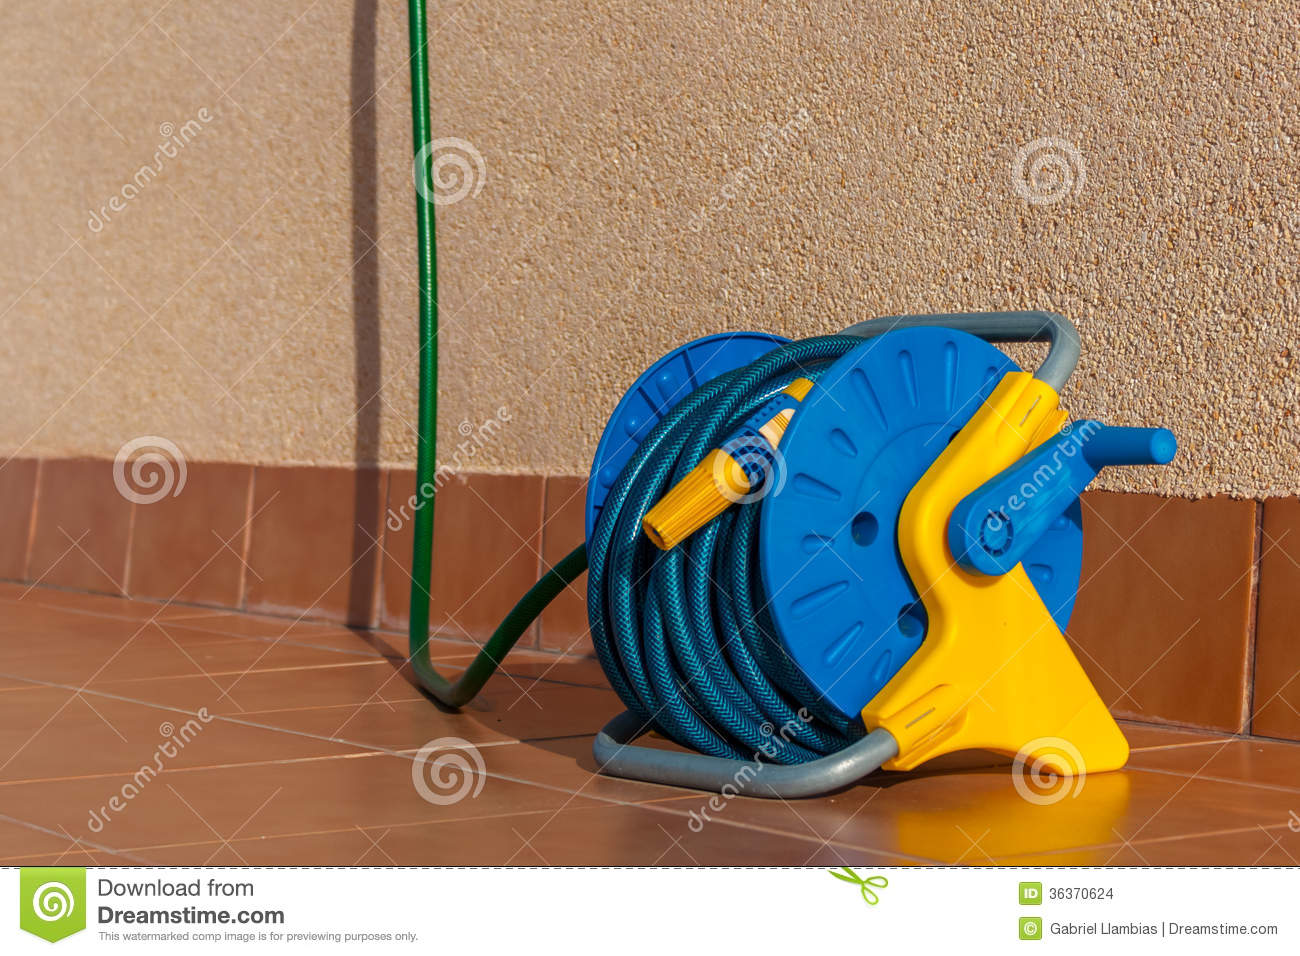 Watering garden hose stock photo. Image of coil, connector - 36370624